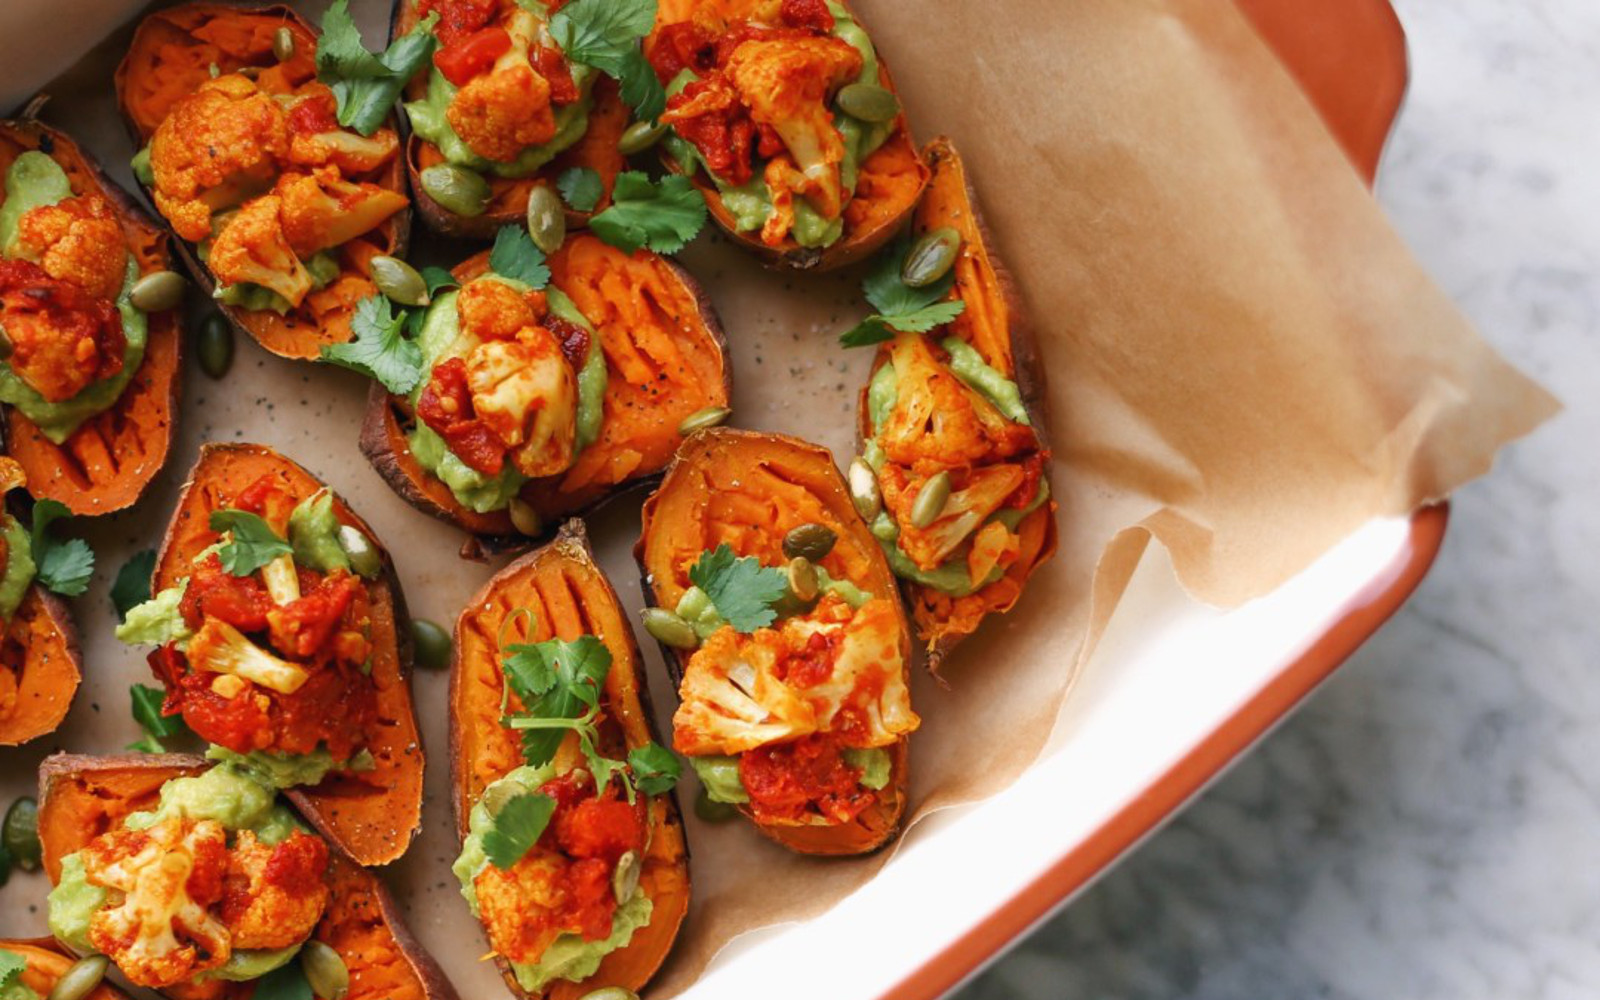 Sweet Potato Bites With Guacamole and Cauliflower